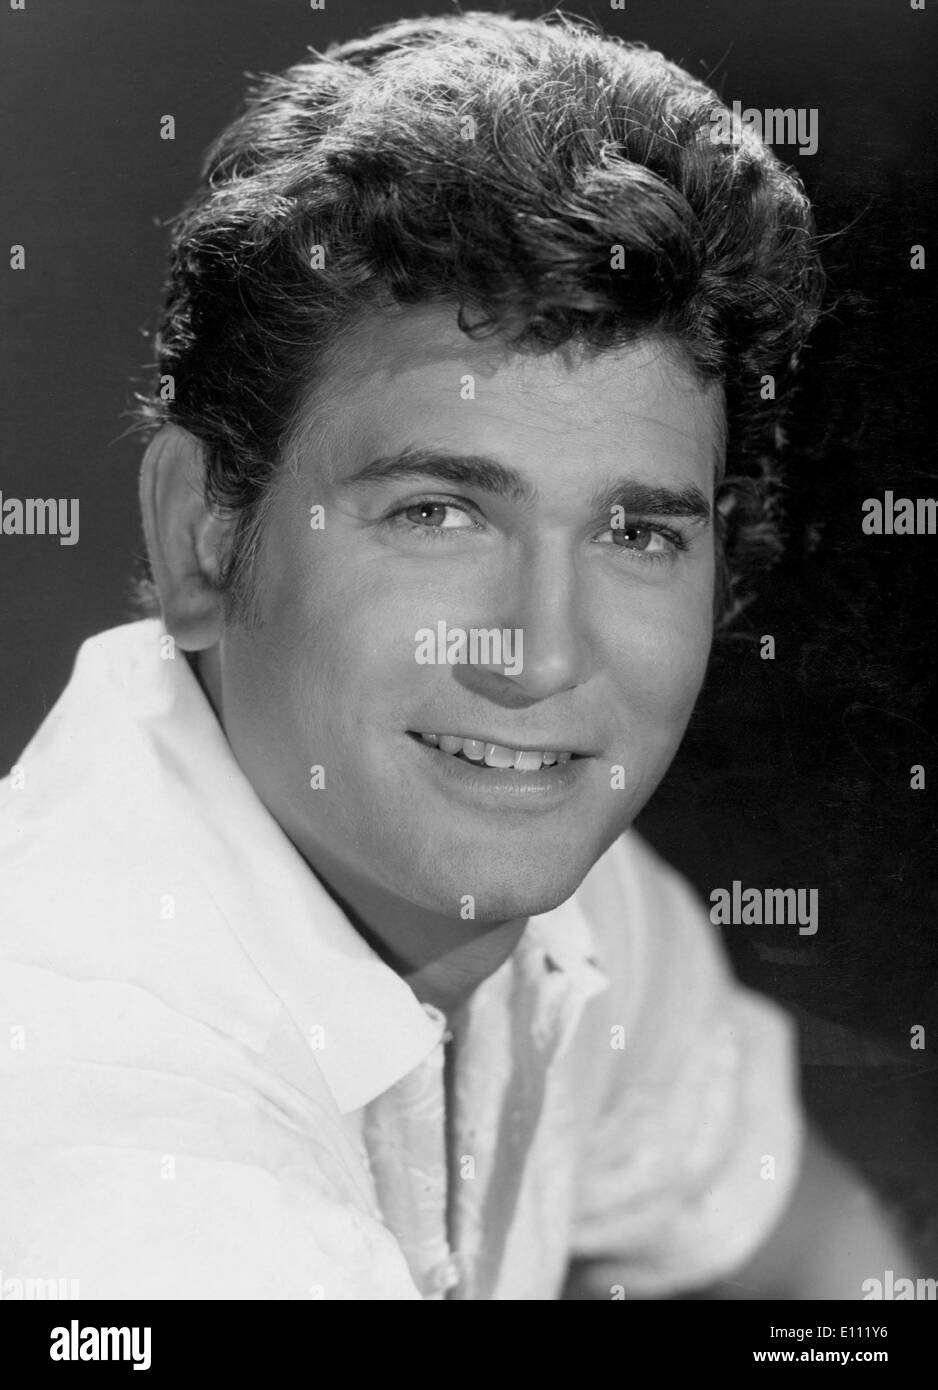 American actor, producer and director, MICHAEL LANDON, who starred in three popular NBC TV series - Stock Image